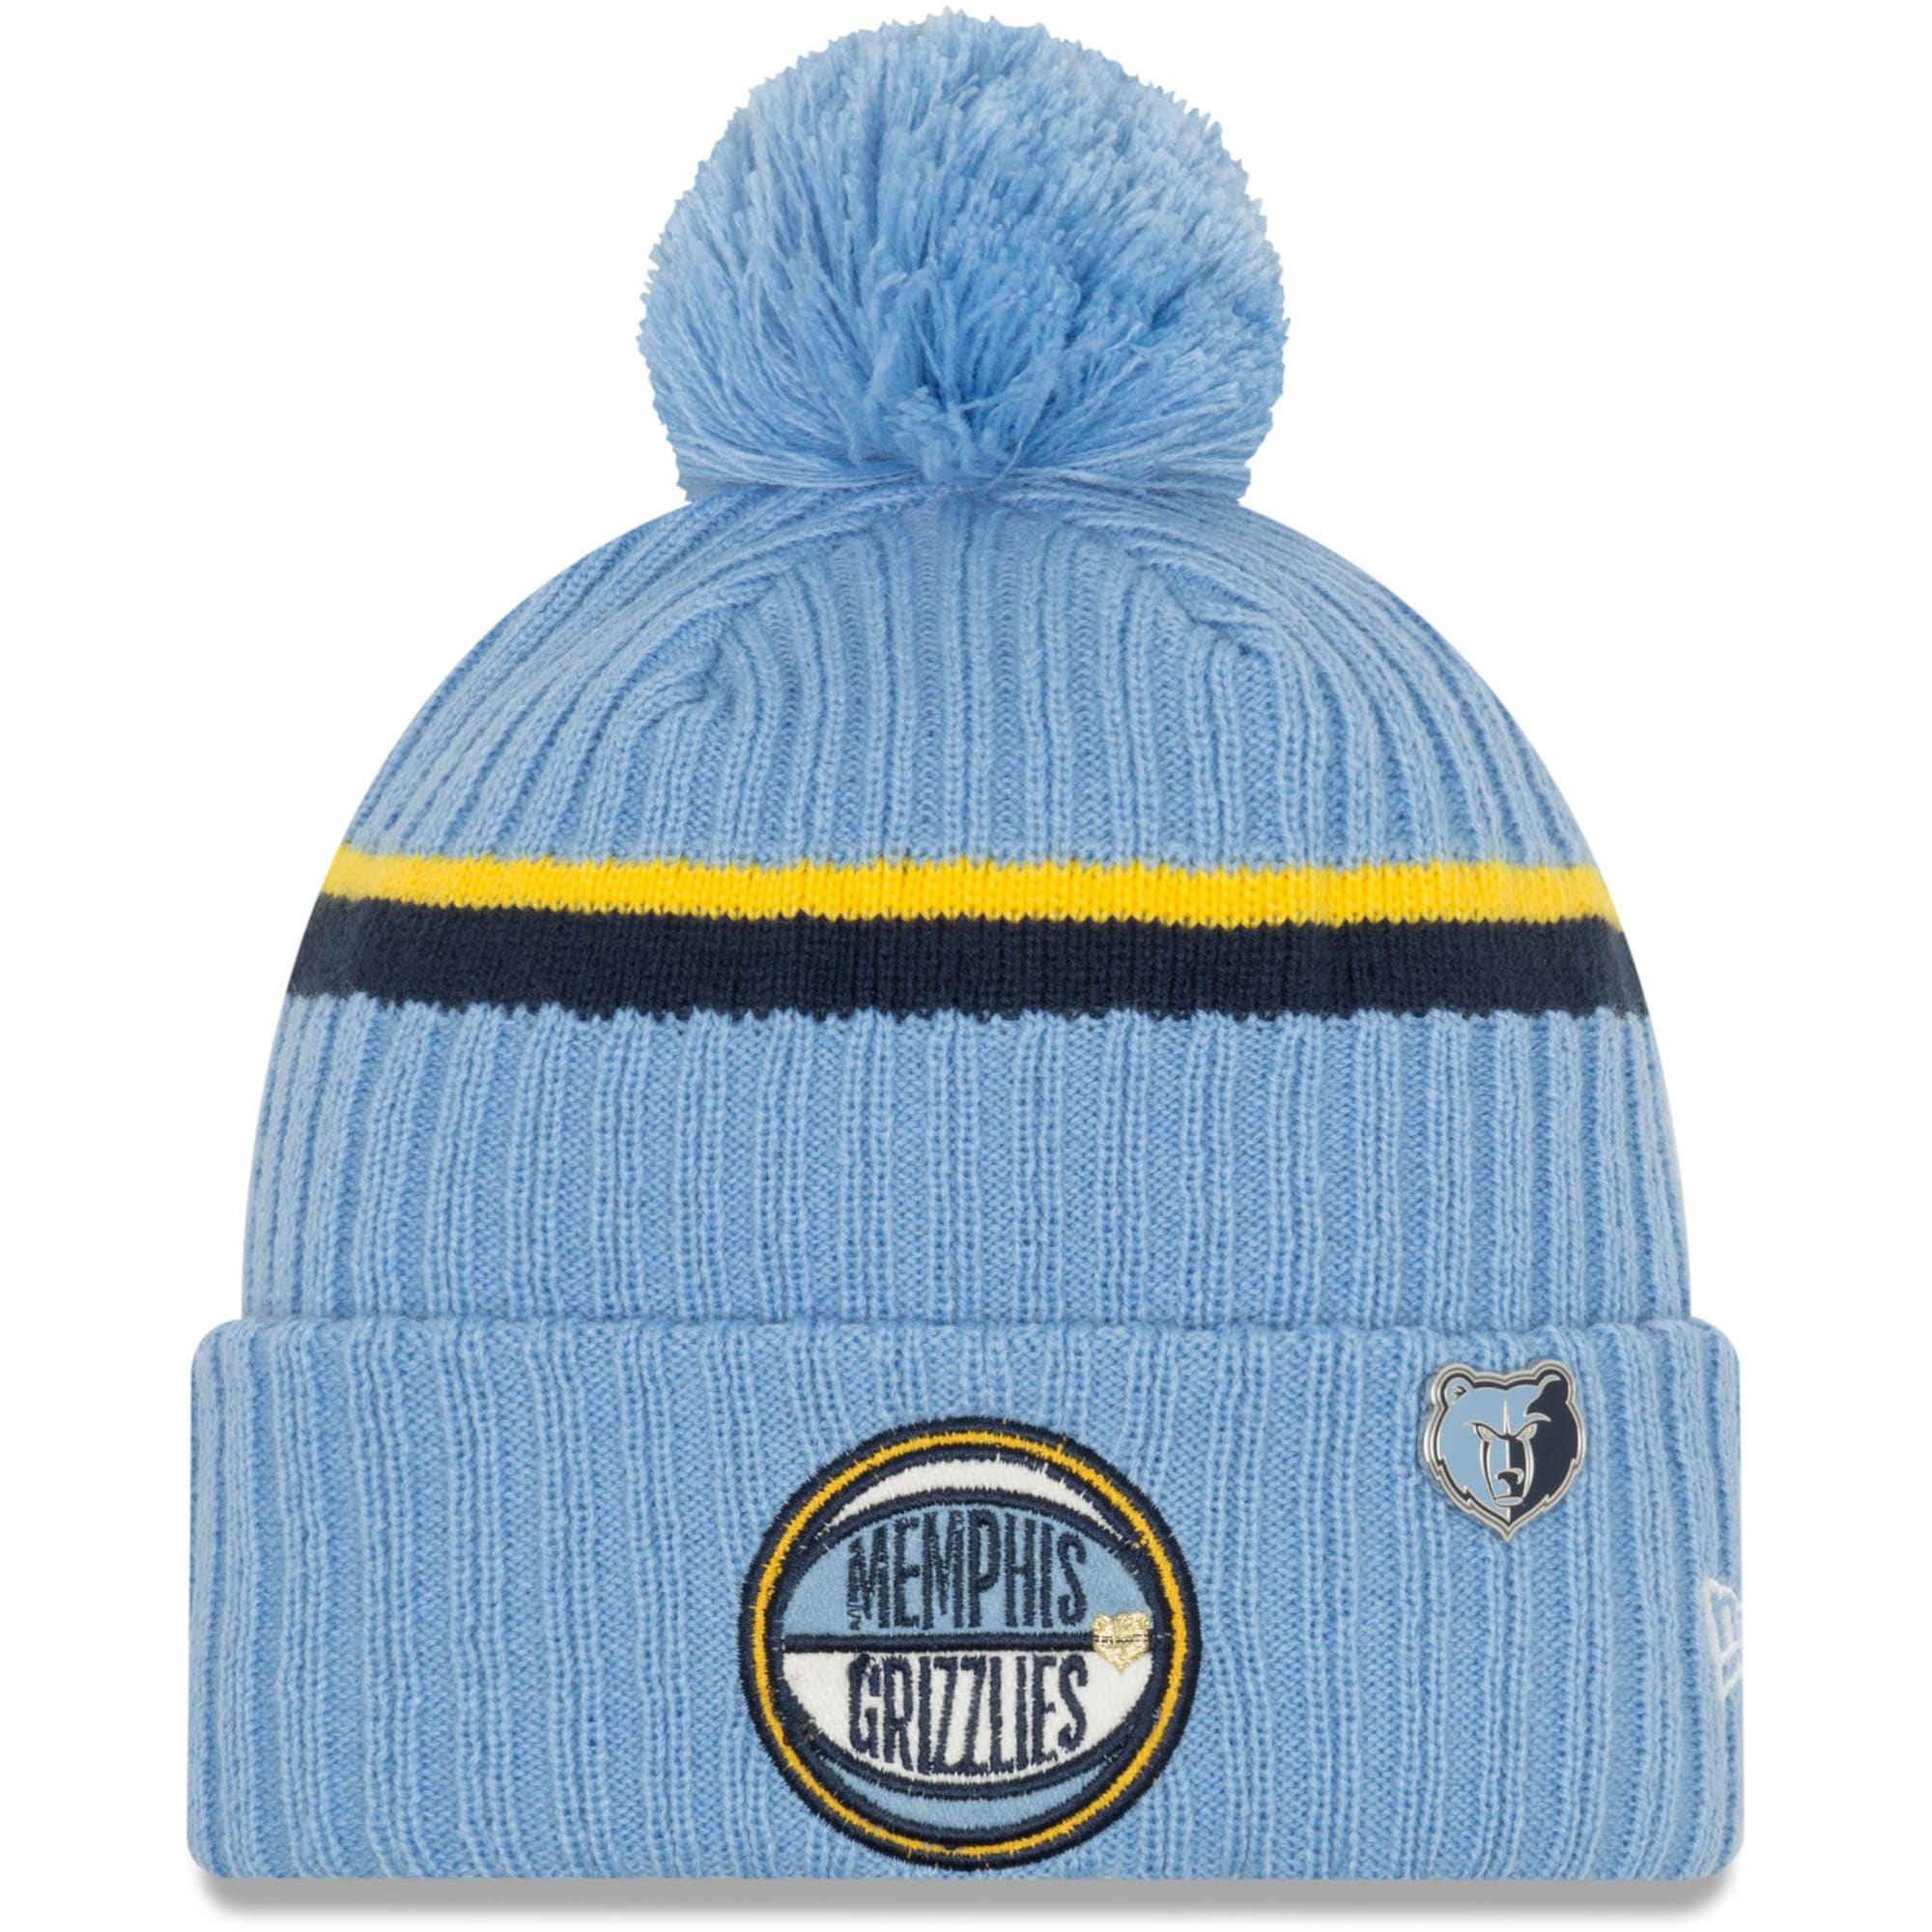 Memphis Grizzlies New Era Youth 2019 NBA Draft Cuffed Knit Hat - Light Blue